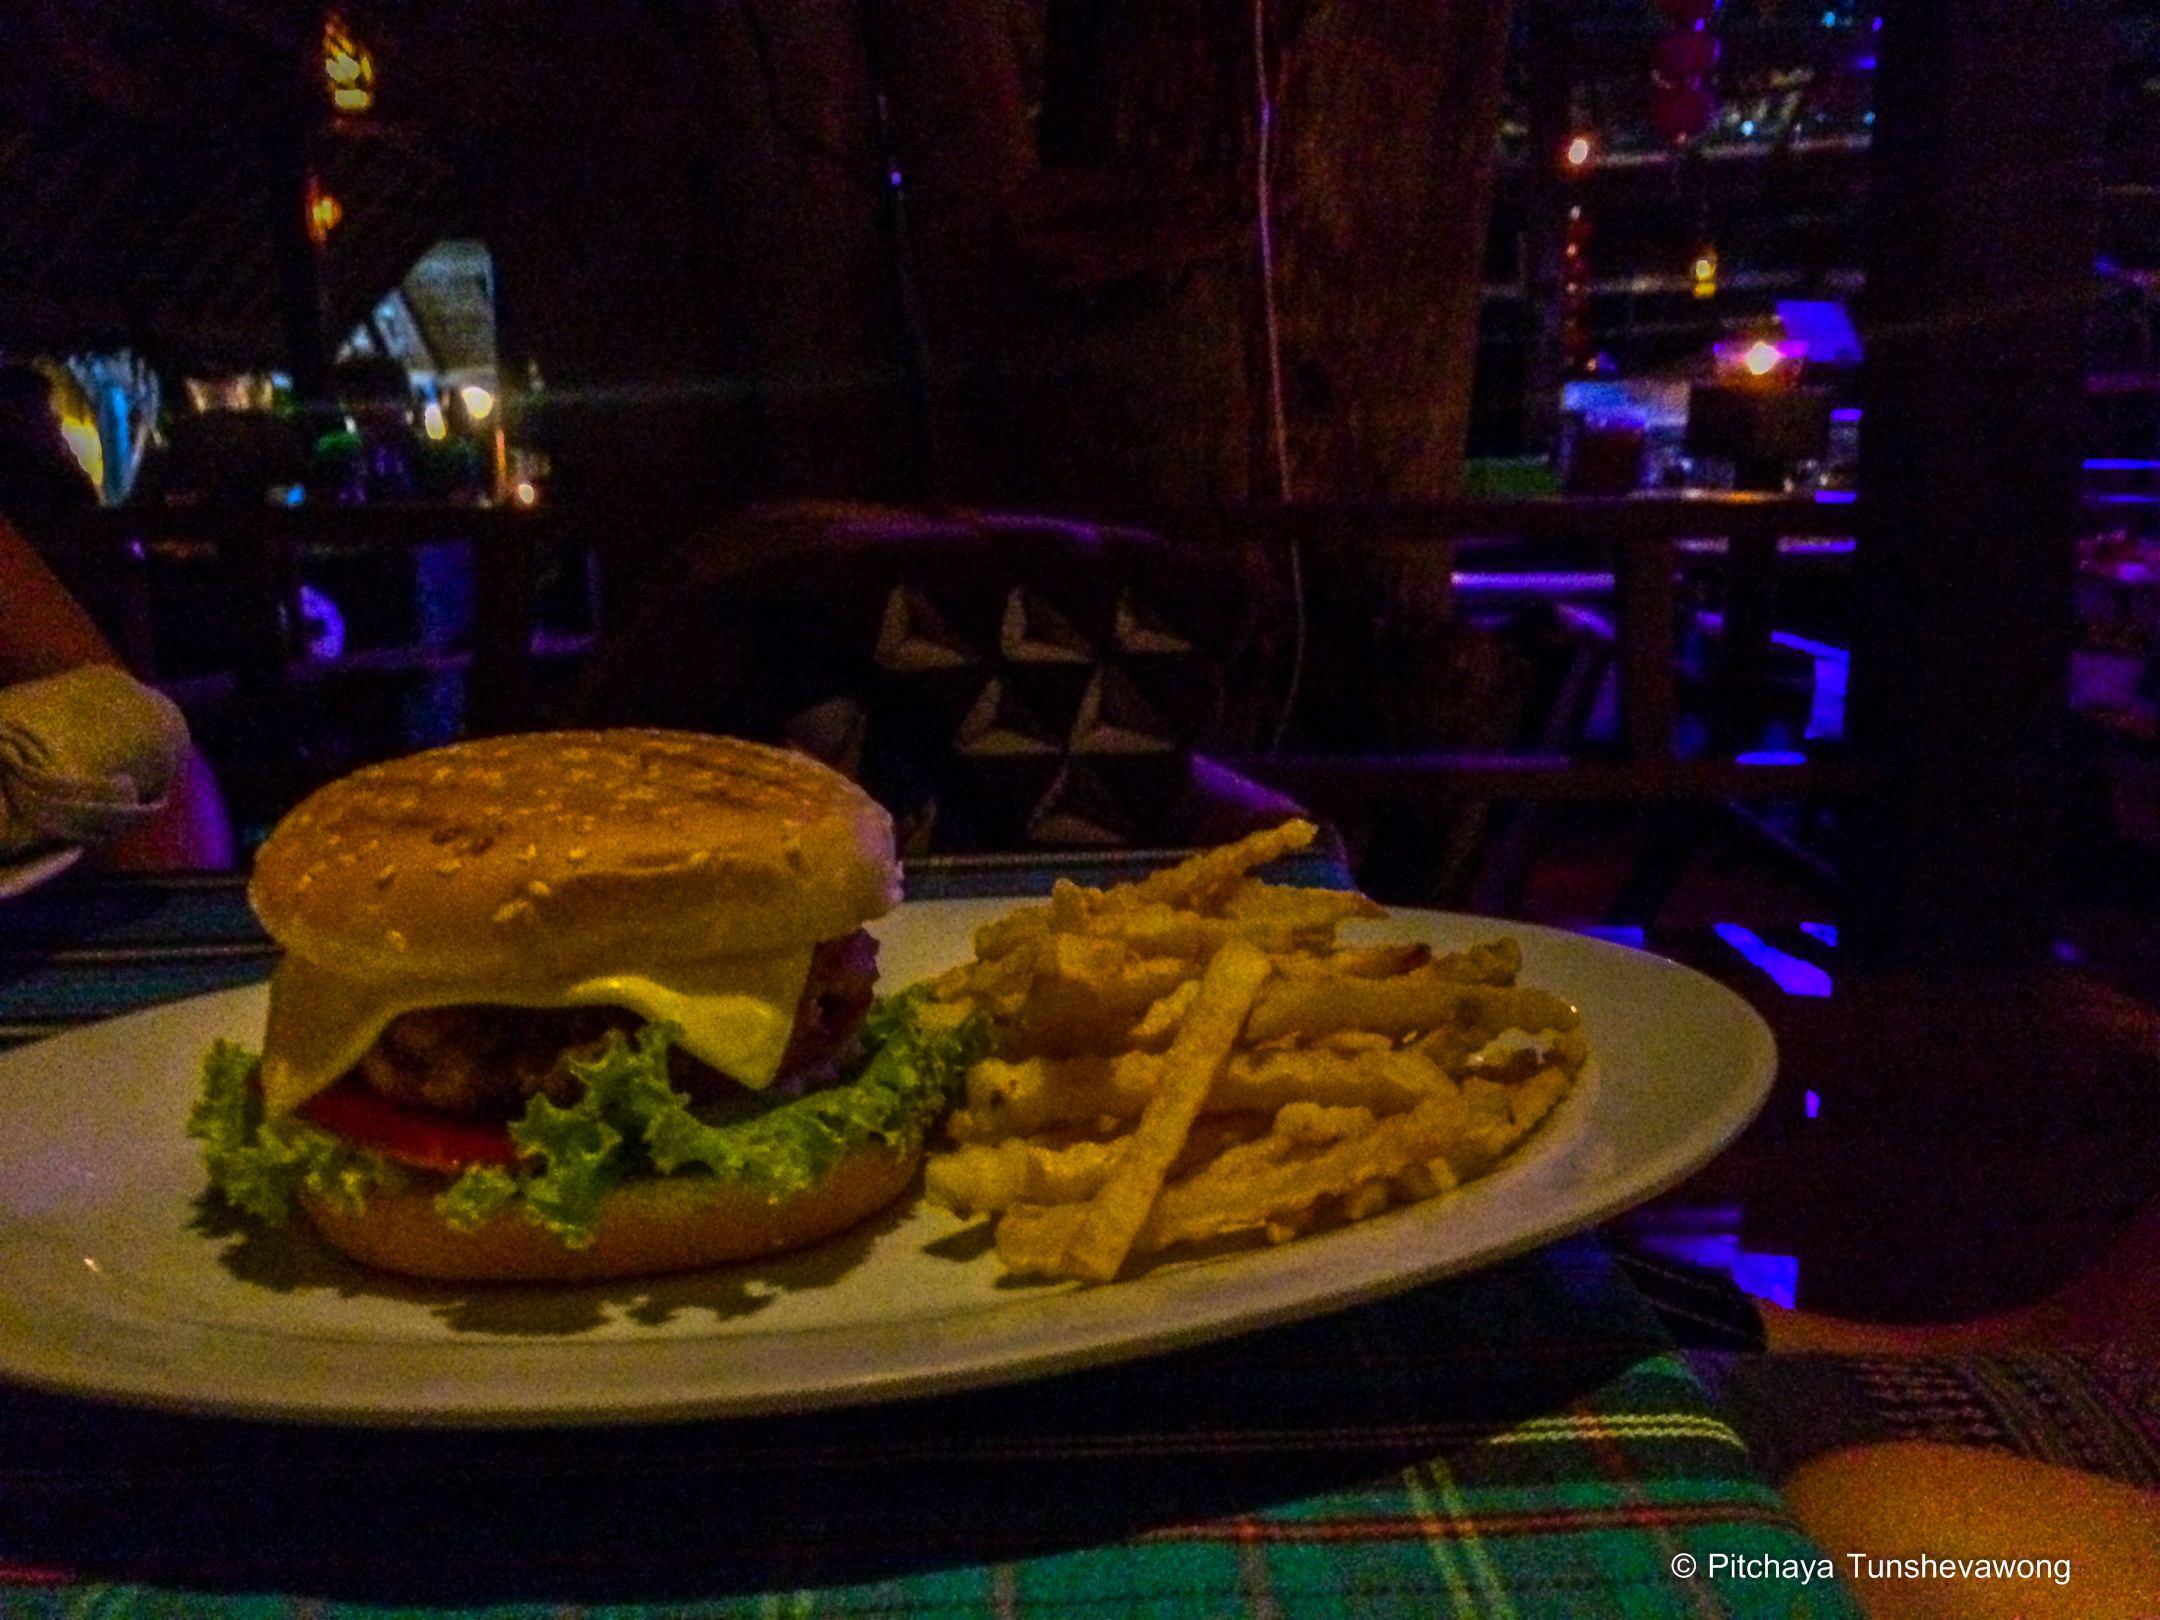 A plate of beef burger during the raining evening